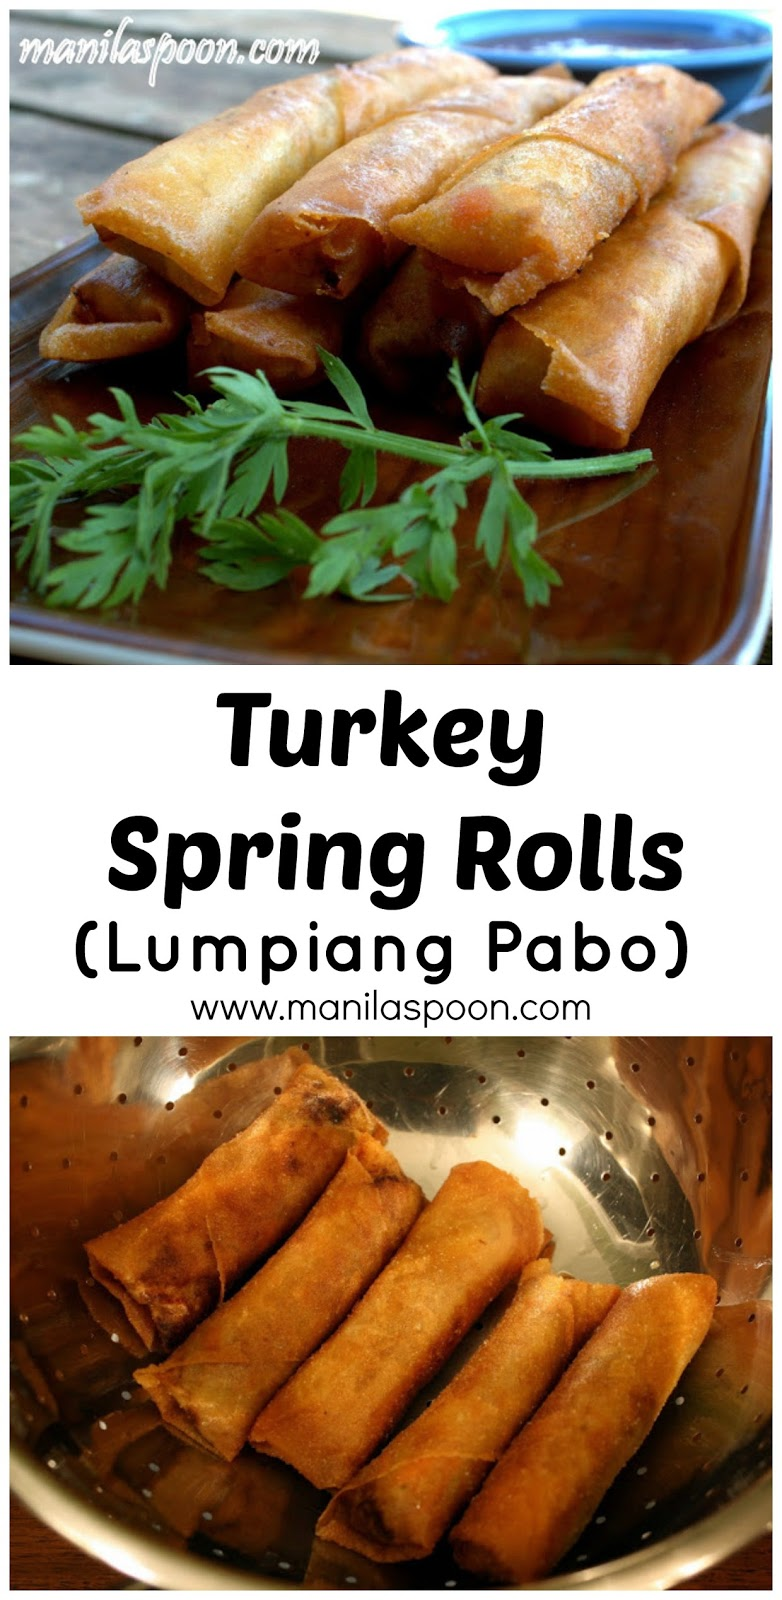 For a healthier and low-fat version of spring rolls that tastes so good, too - Turkey Spring Rolls is the best option. Perfect for Thanksgiving left-overs, too.